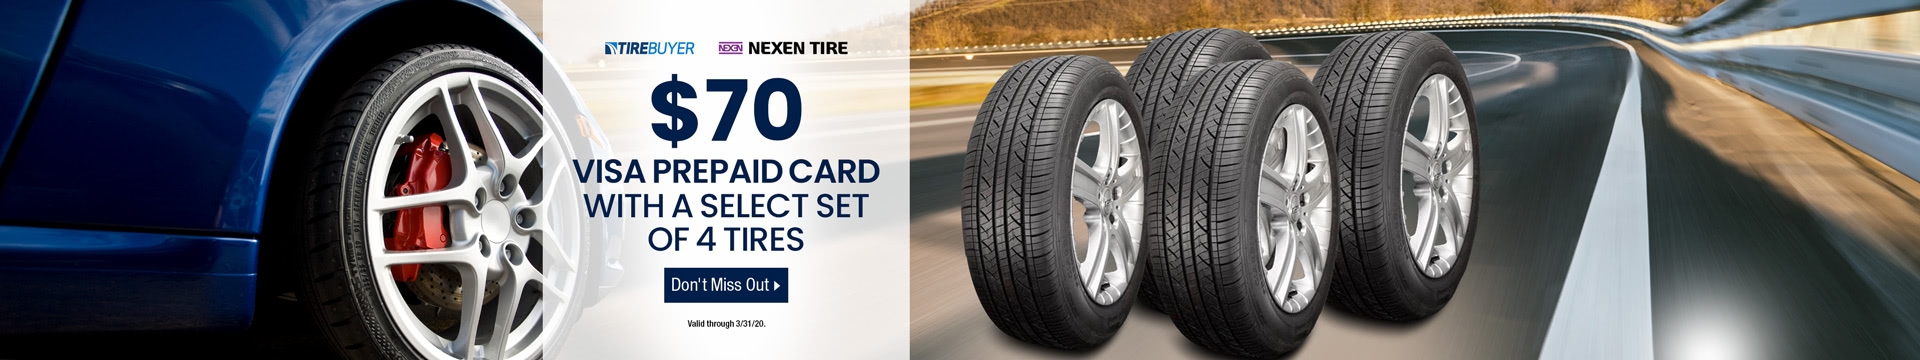 $70 VISA Prepaid Card with a Select Set of 4 Tires